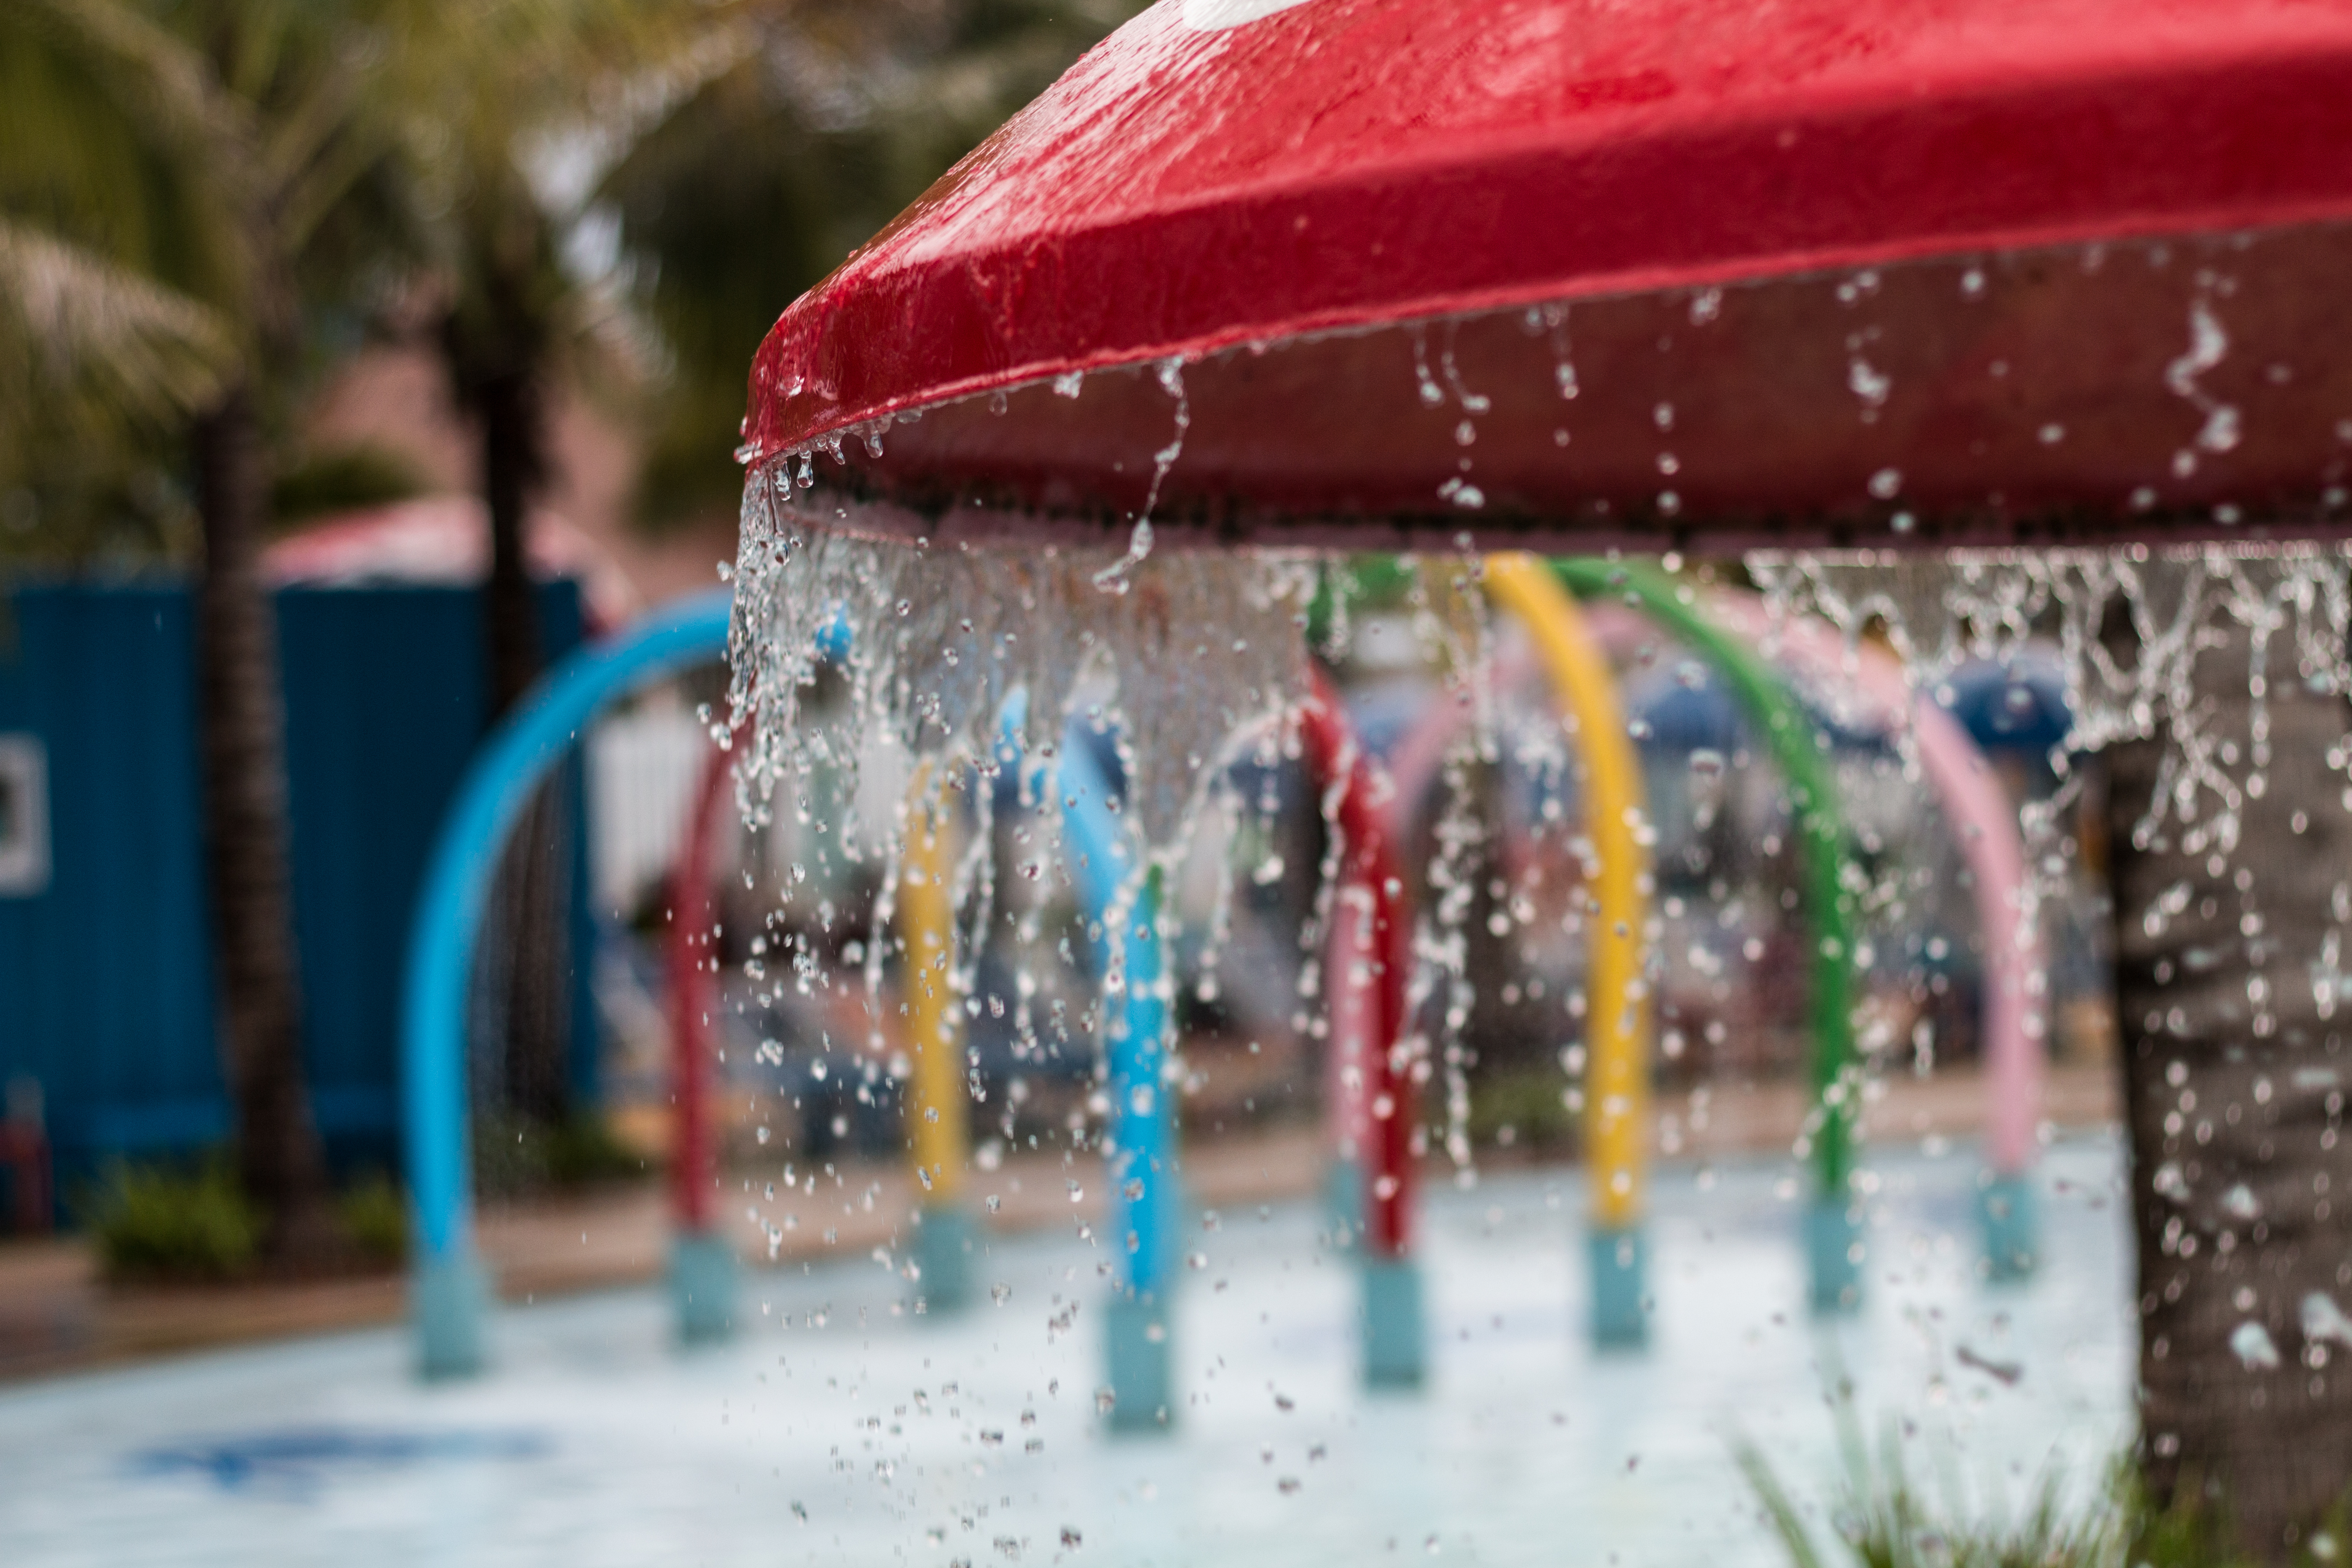 A red mushroom-shaped structure dips water at a spray park, with multicolor sprinklers in the background.